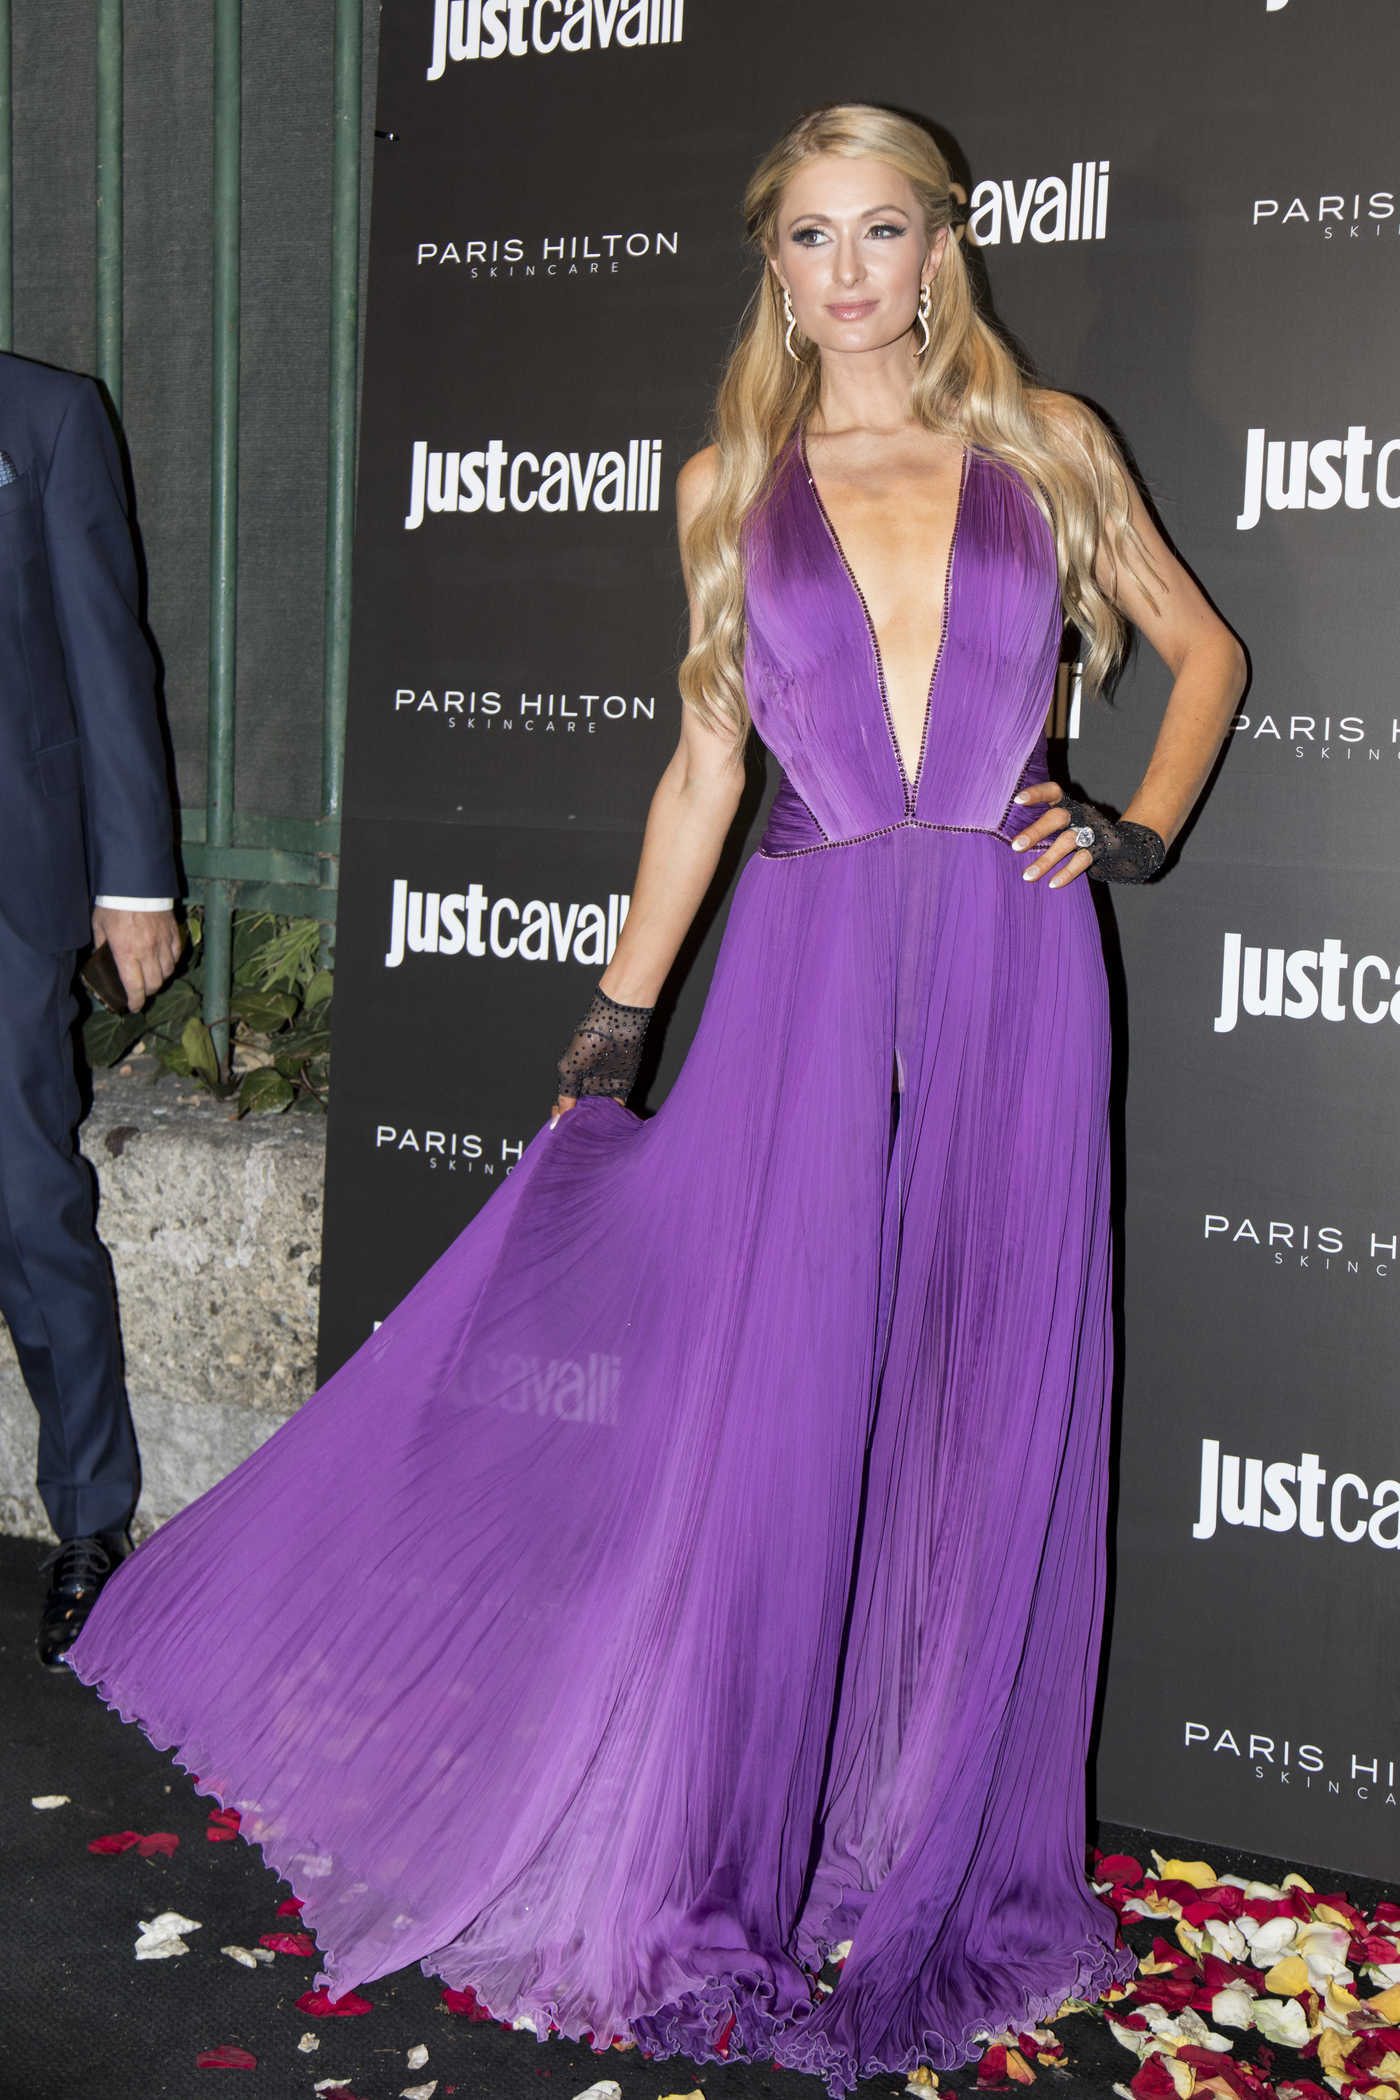 Paris Hilton Attends the ProDna Skincare Launch Party at the Just Cavalli Club in Milan 10/20/2018